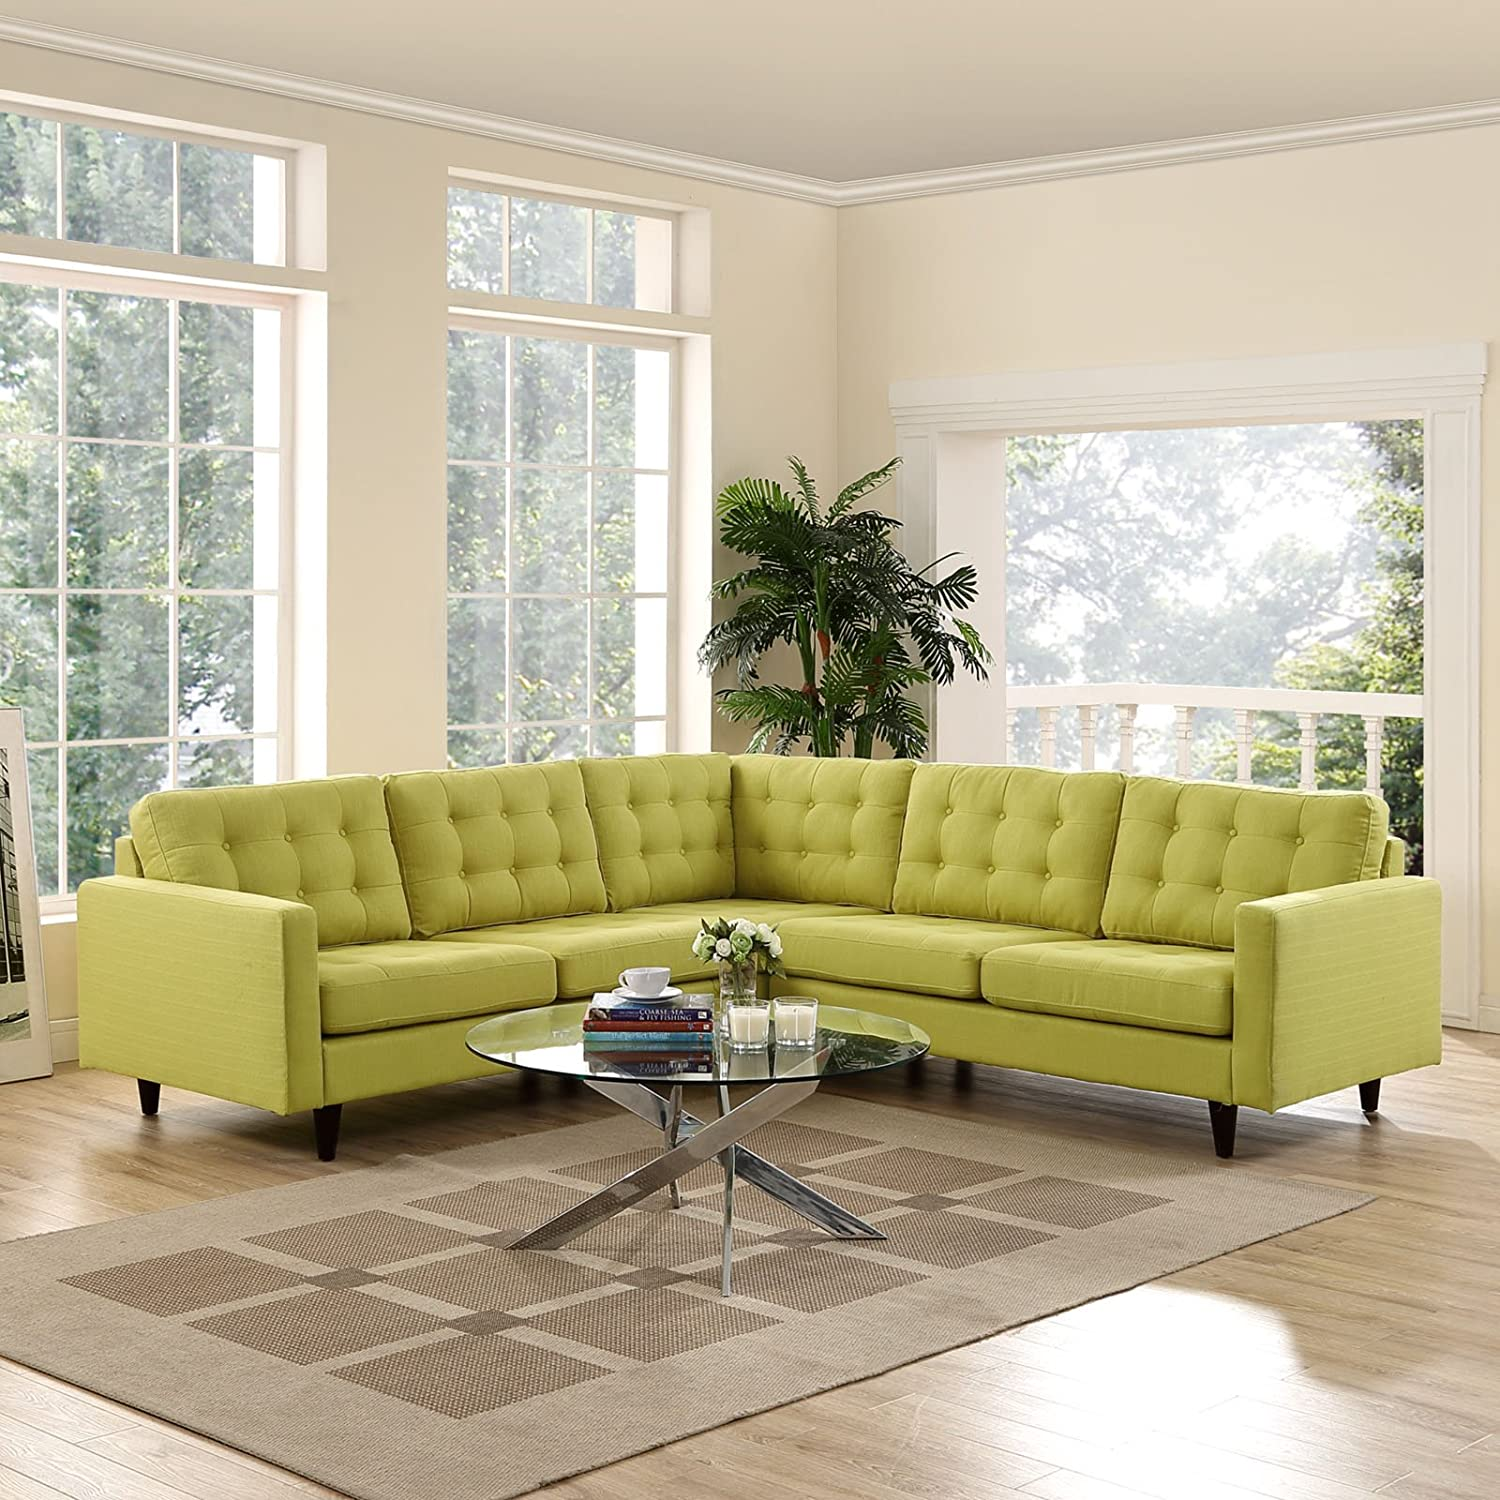 Empress 3 Piece Fabric Sectional Sofa Set - Wheatgrass